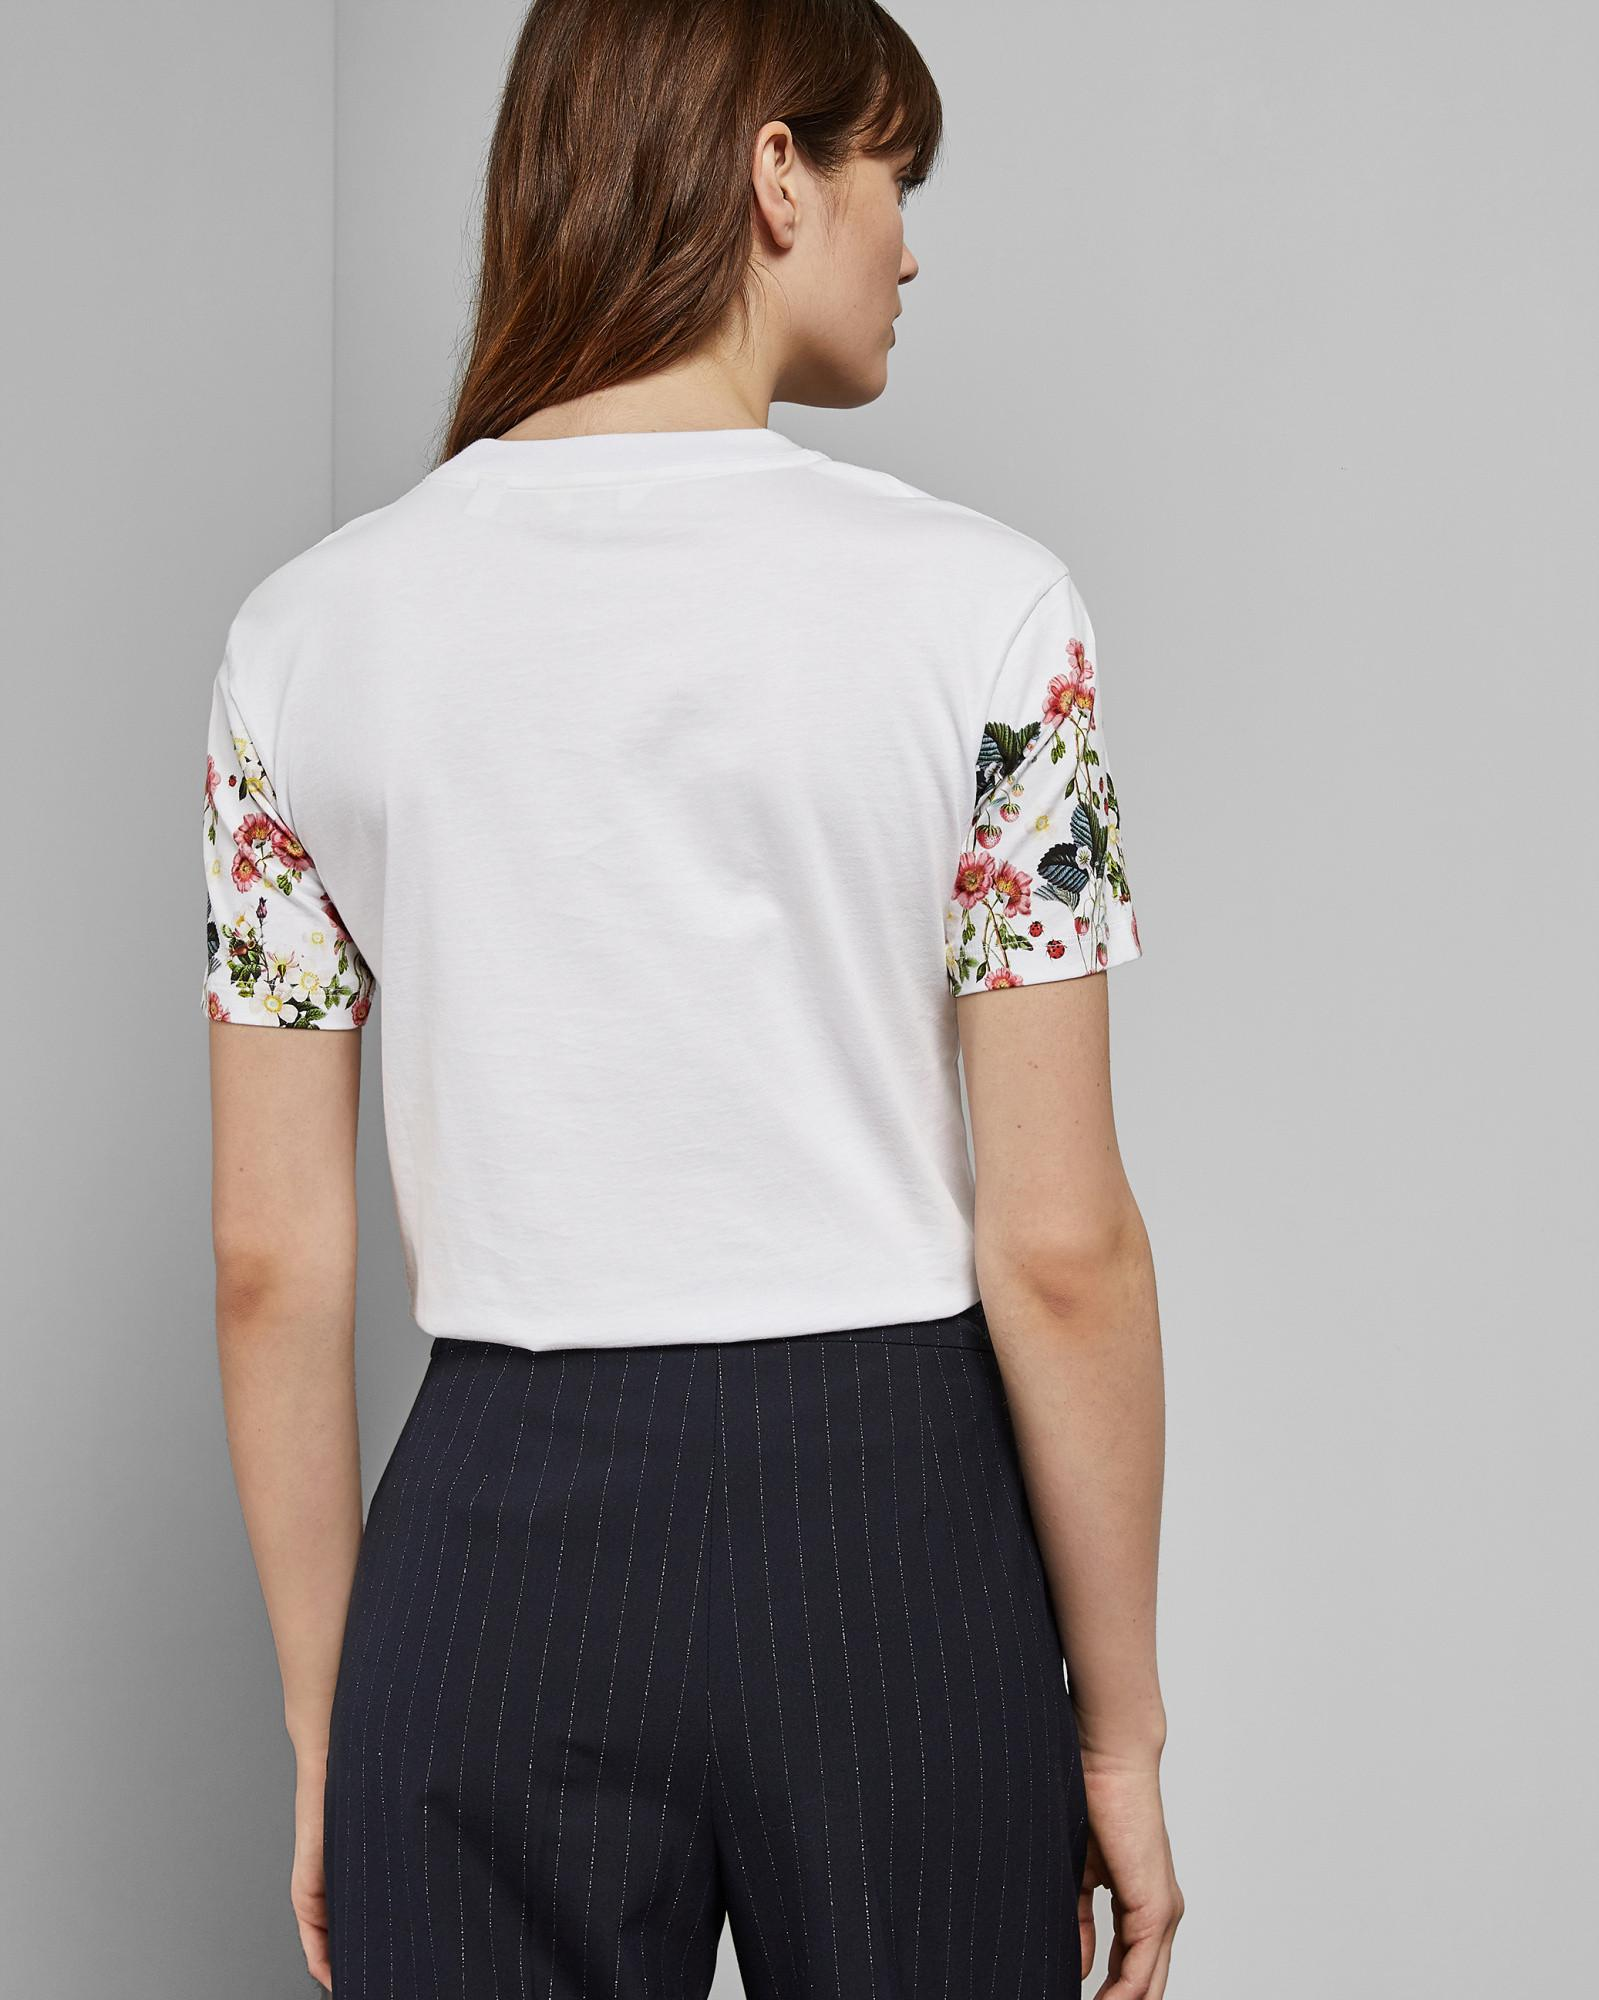 5cfc77548 Ted Baker - White Oracle Printed Cotton T-shirt - Lyst. View fullscreen